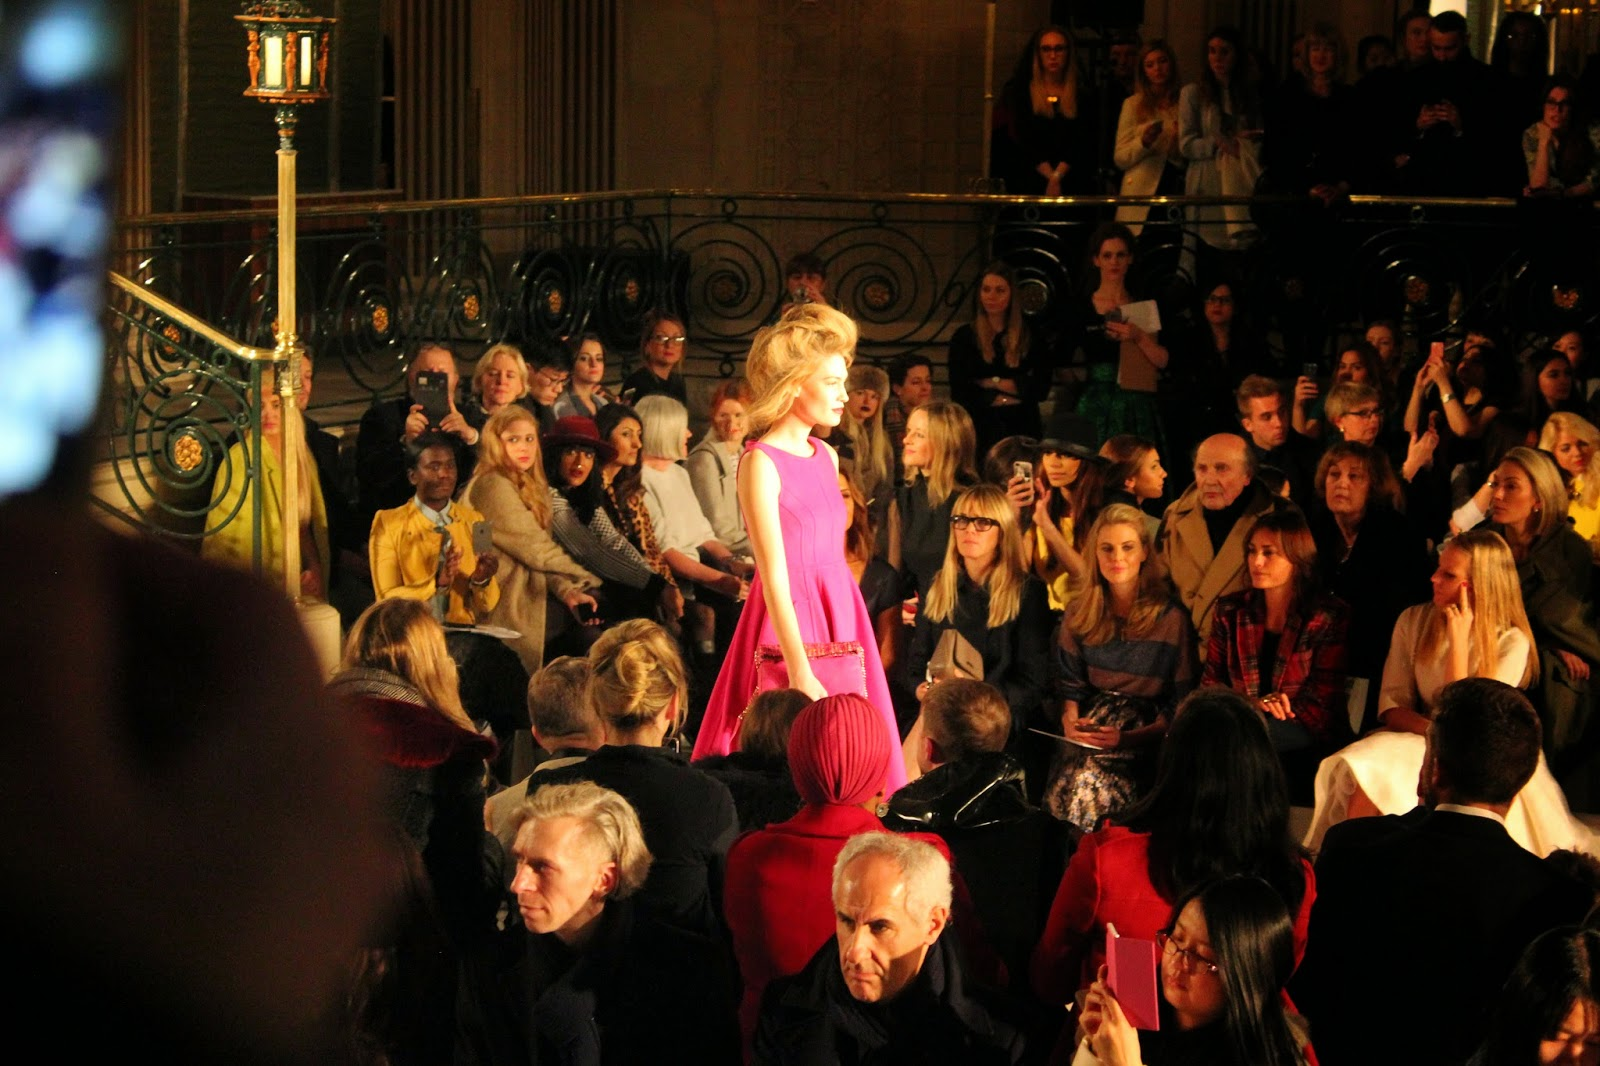 london-fashion-week-lfw-paul-costelloe-waldorf-hilton-catwalk-models-runway-dresses-collection-spring-summer-2015-ss15